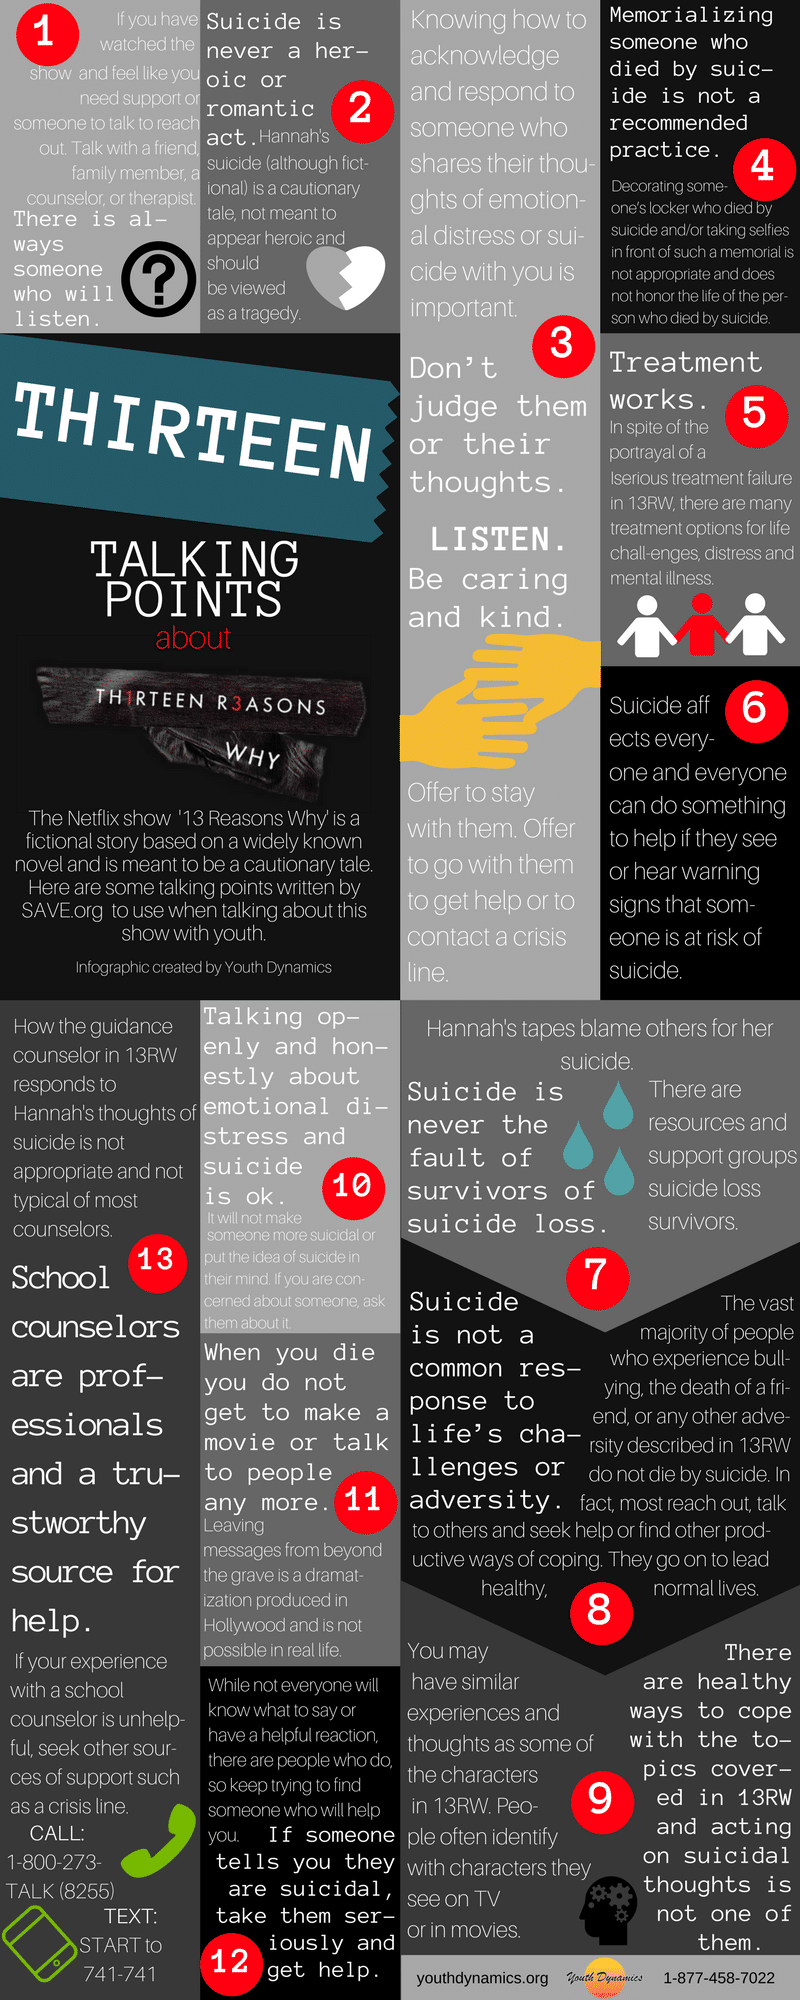 13 Talking Points 2 - [Infographic] 13 Reasons Why Talking Points